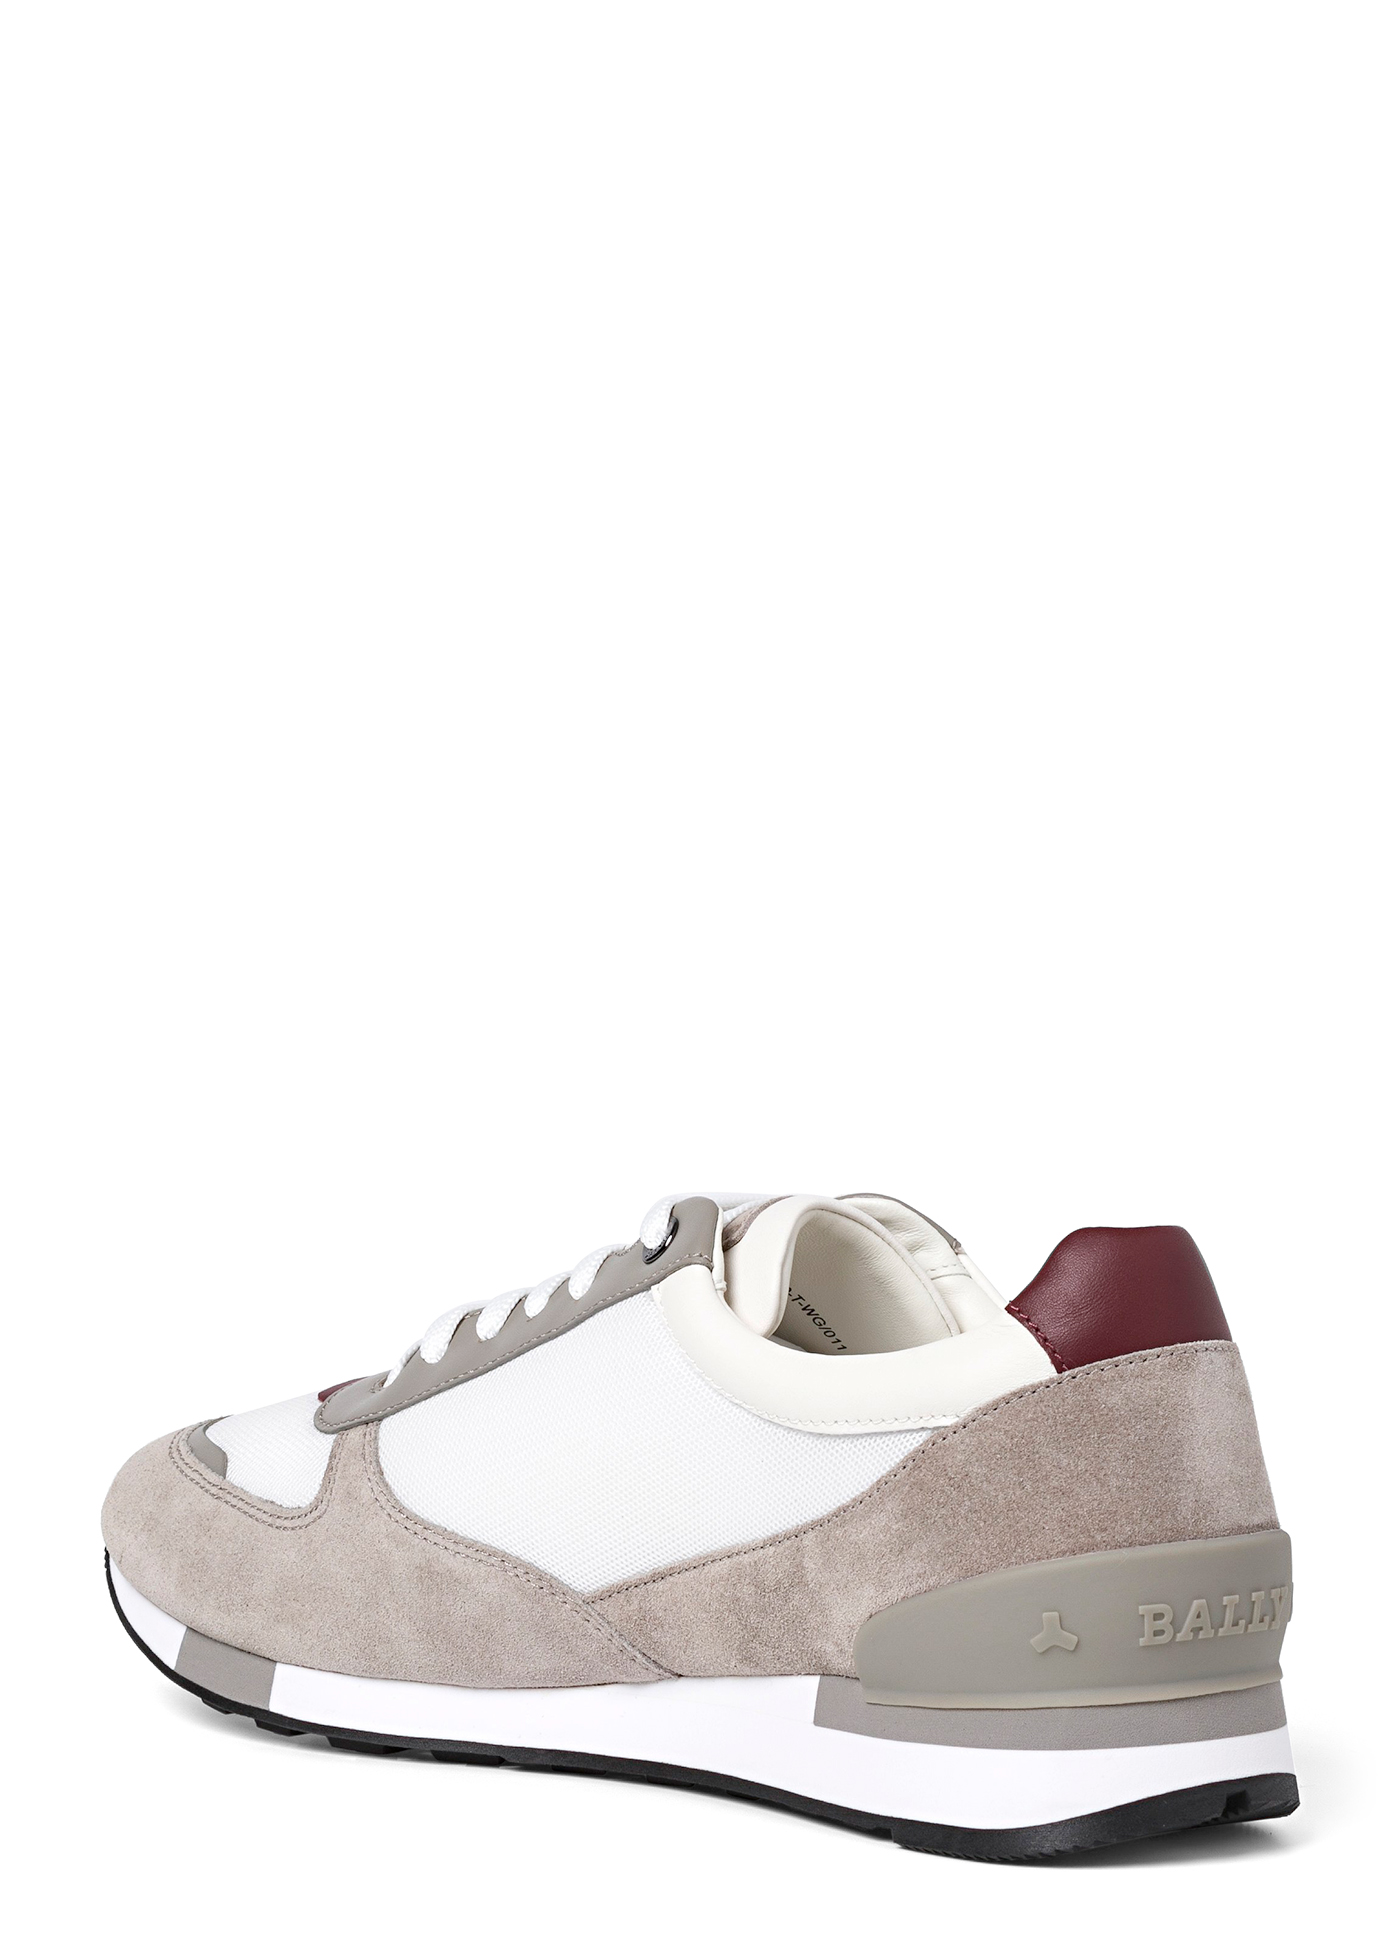 GISMO-T-WG/11 SNEAKER image number 2